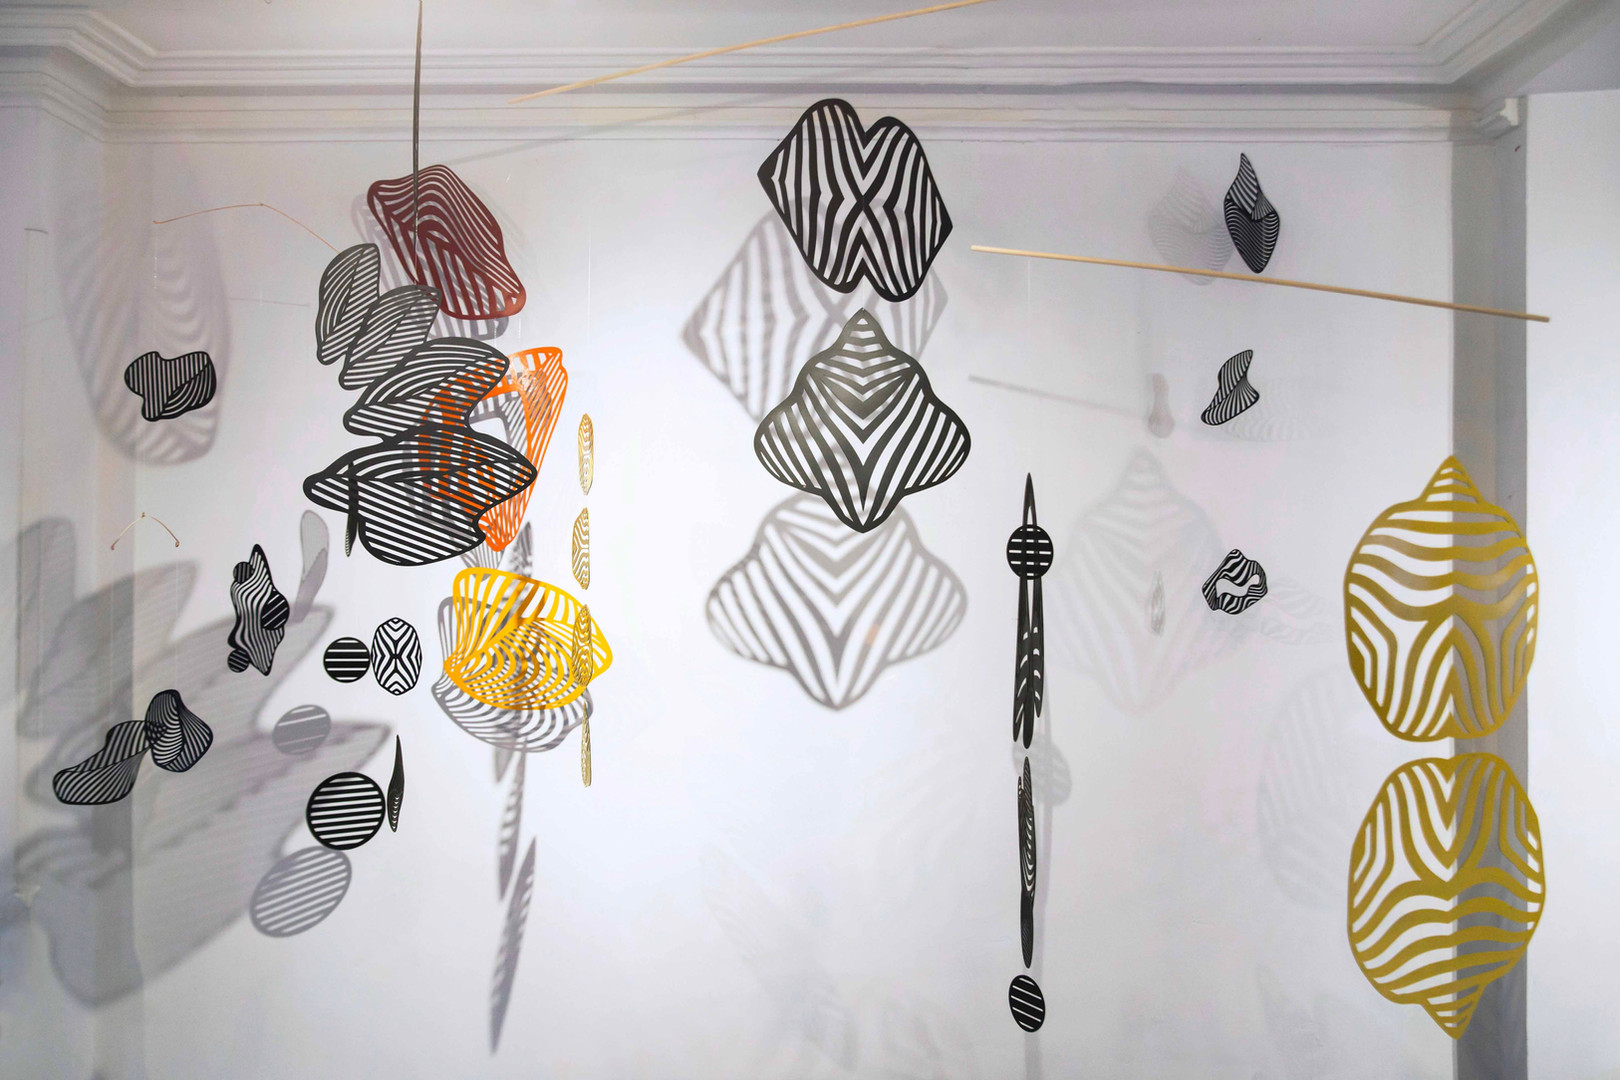 Wendy Letven, Gyre, 2020. Site-specific installation, Cut paper, dimensions variable ©Wendy Letven, courtesy Fou Gallery